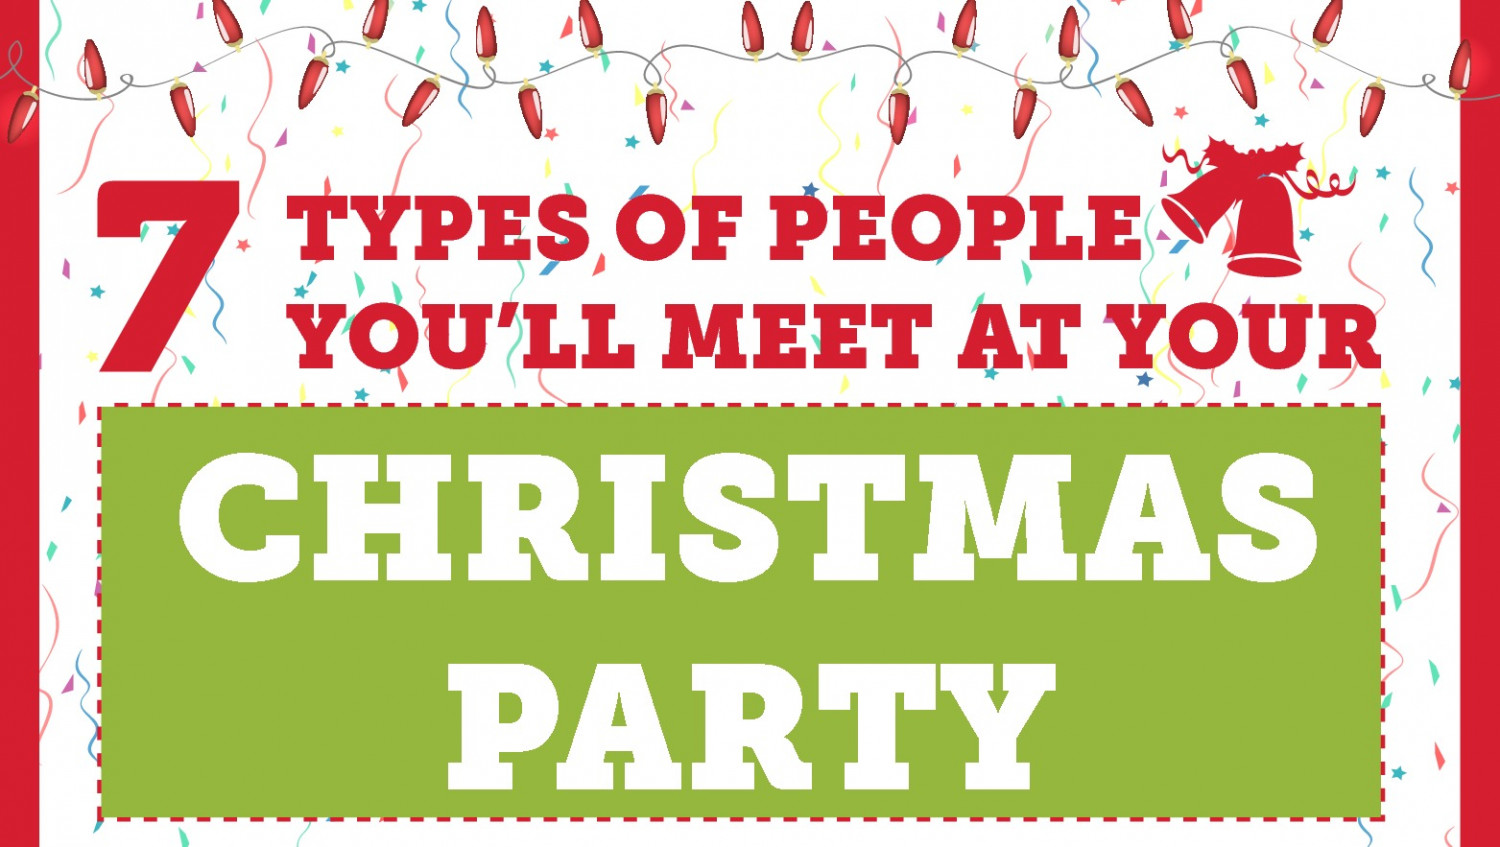 7 Types of People You'll Meet at Your Christmas Party Infographic